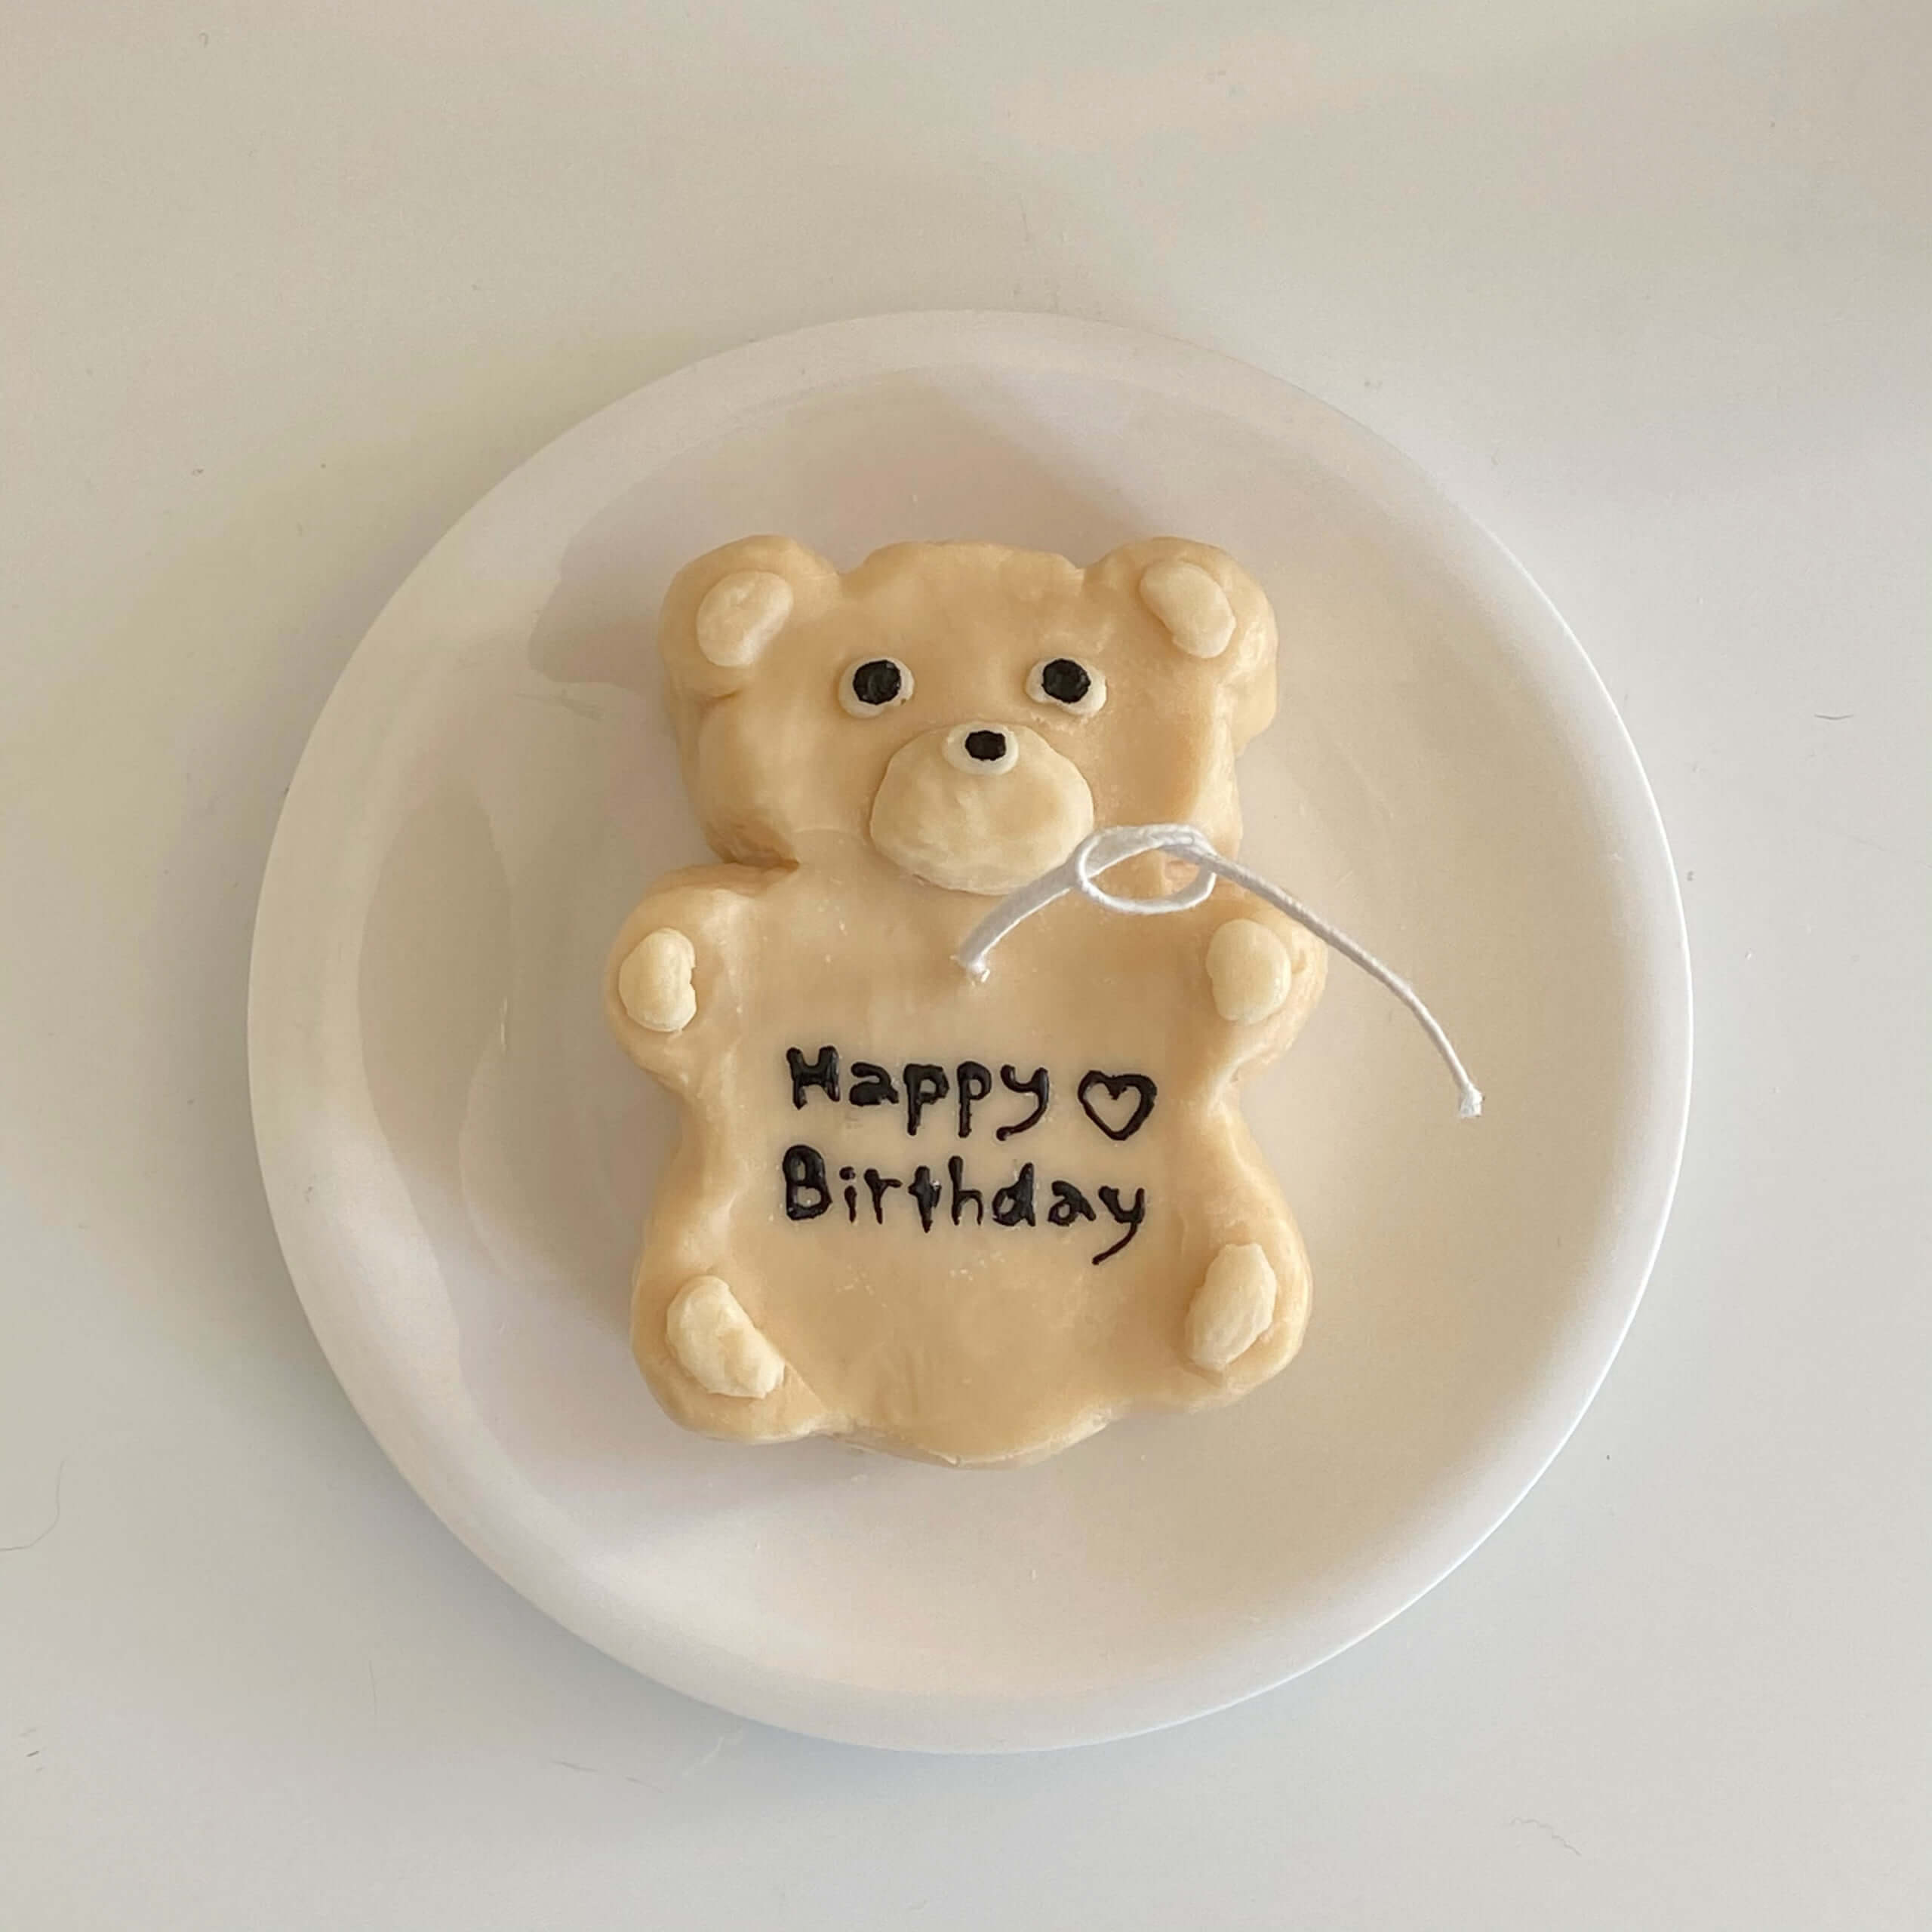 Lily candle(リリーキャンドル)のbear cake candle/¥2,800(税込み)